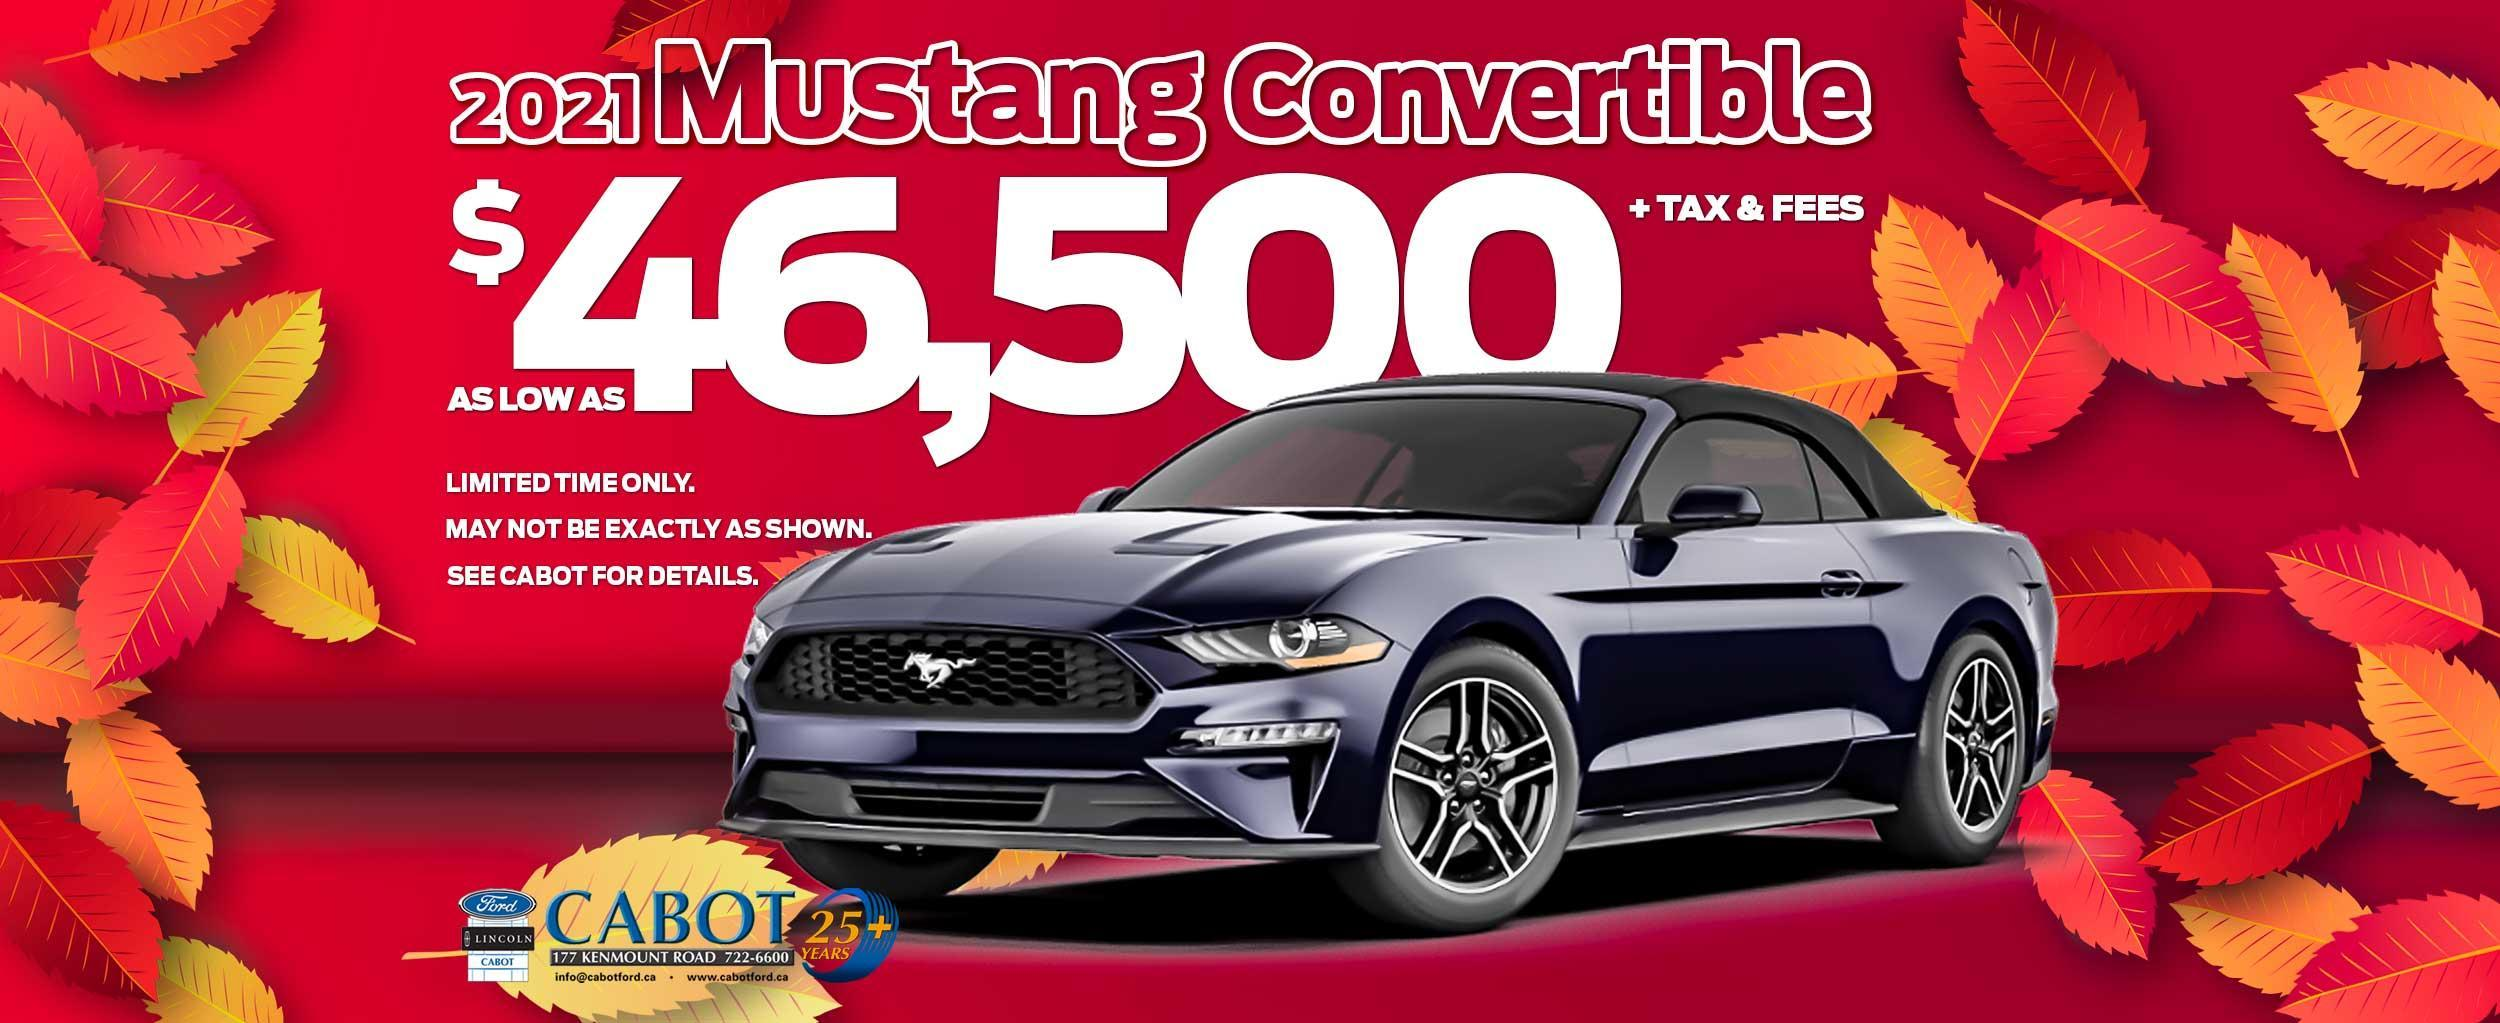 Get a 2021 MUSTANG CONVERTIBLE for AS LOW AS $46,500 + tax & fees.